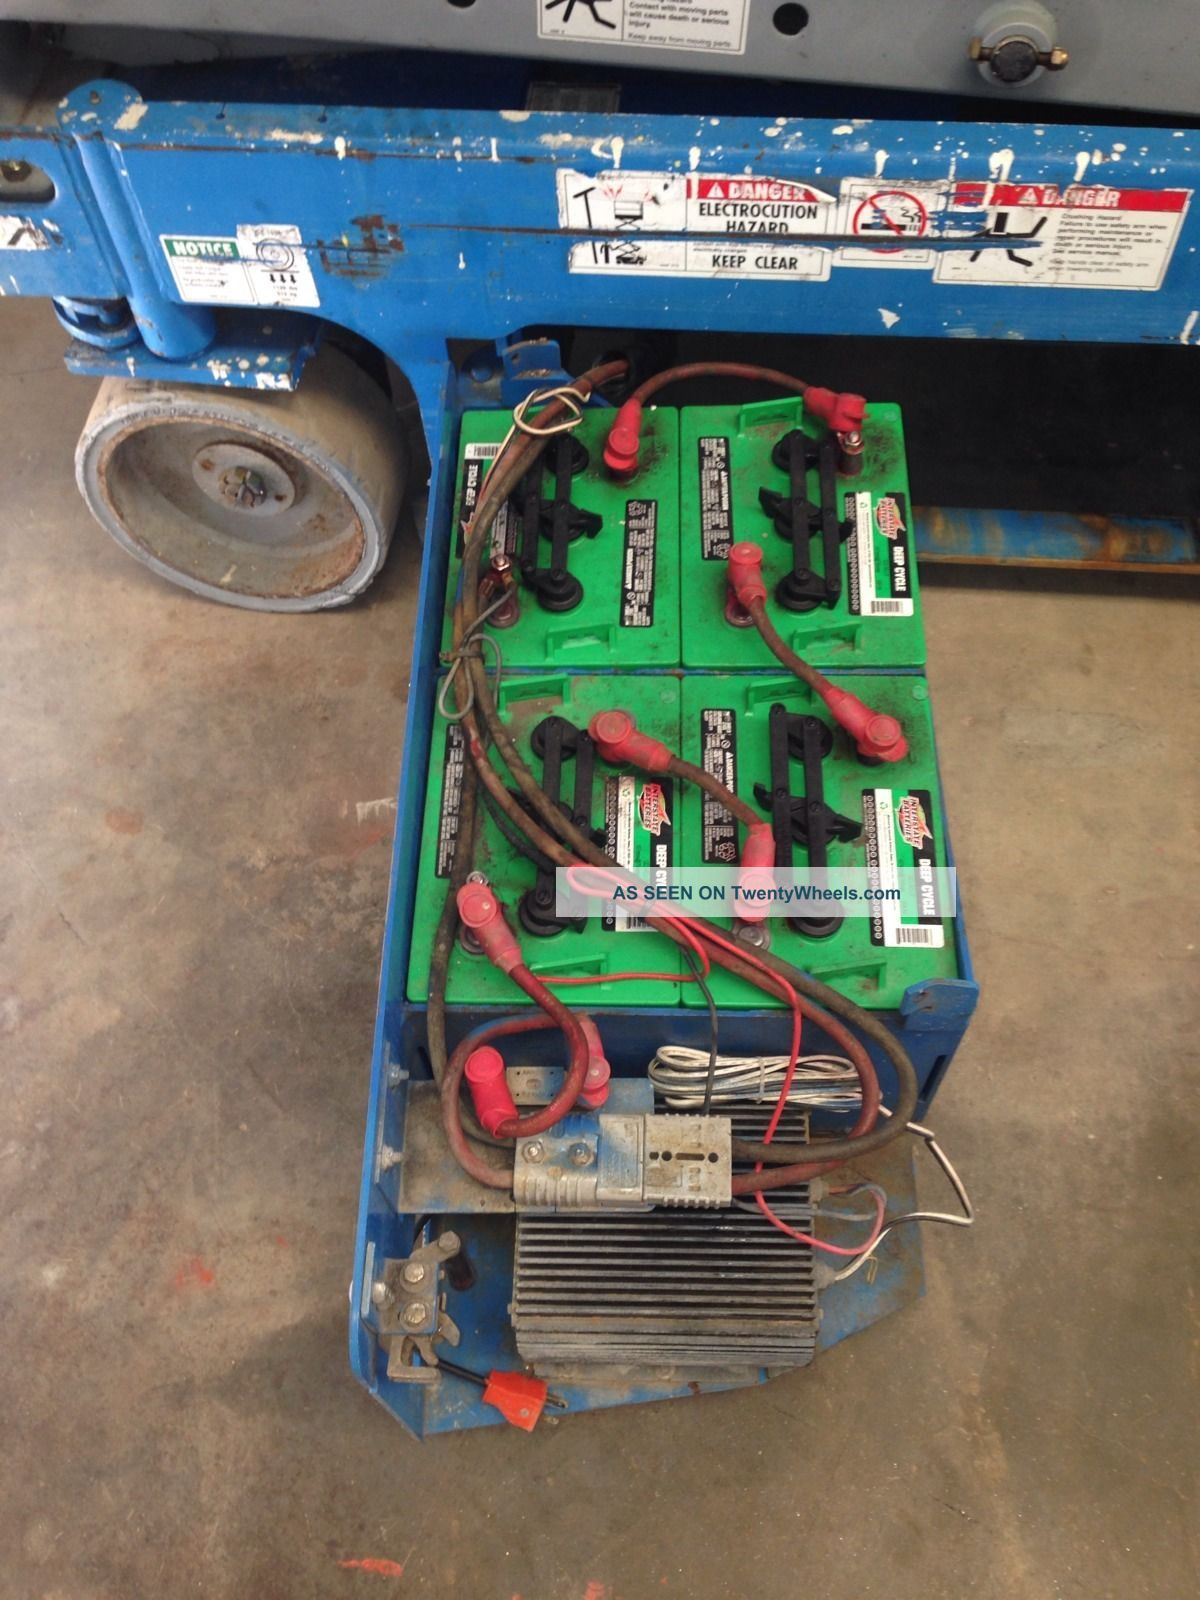 [wrg-4272] 2005 c4500 wiring diagram 03 chevy c4500 wiring diagram 2005 c4500 wiring diagram battery #6